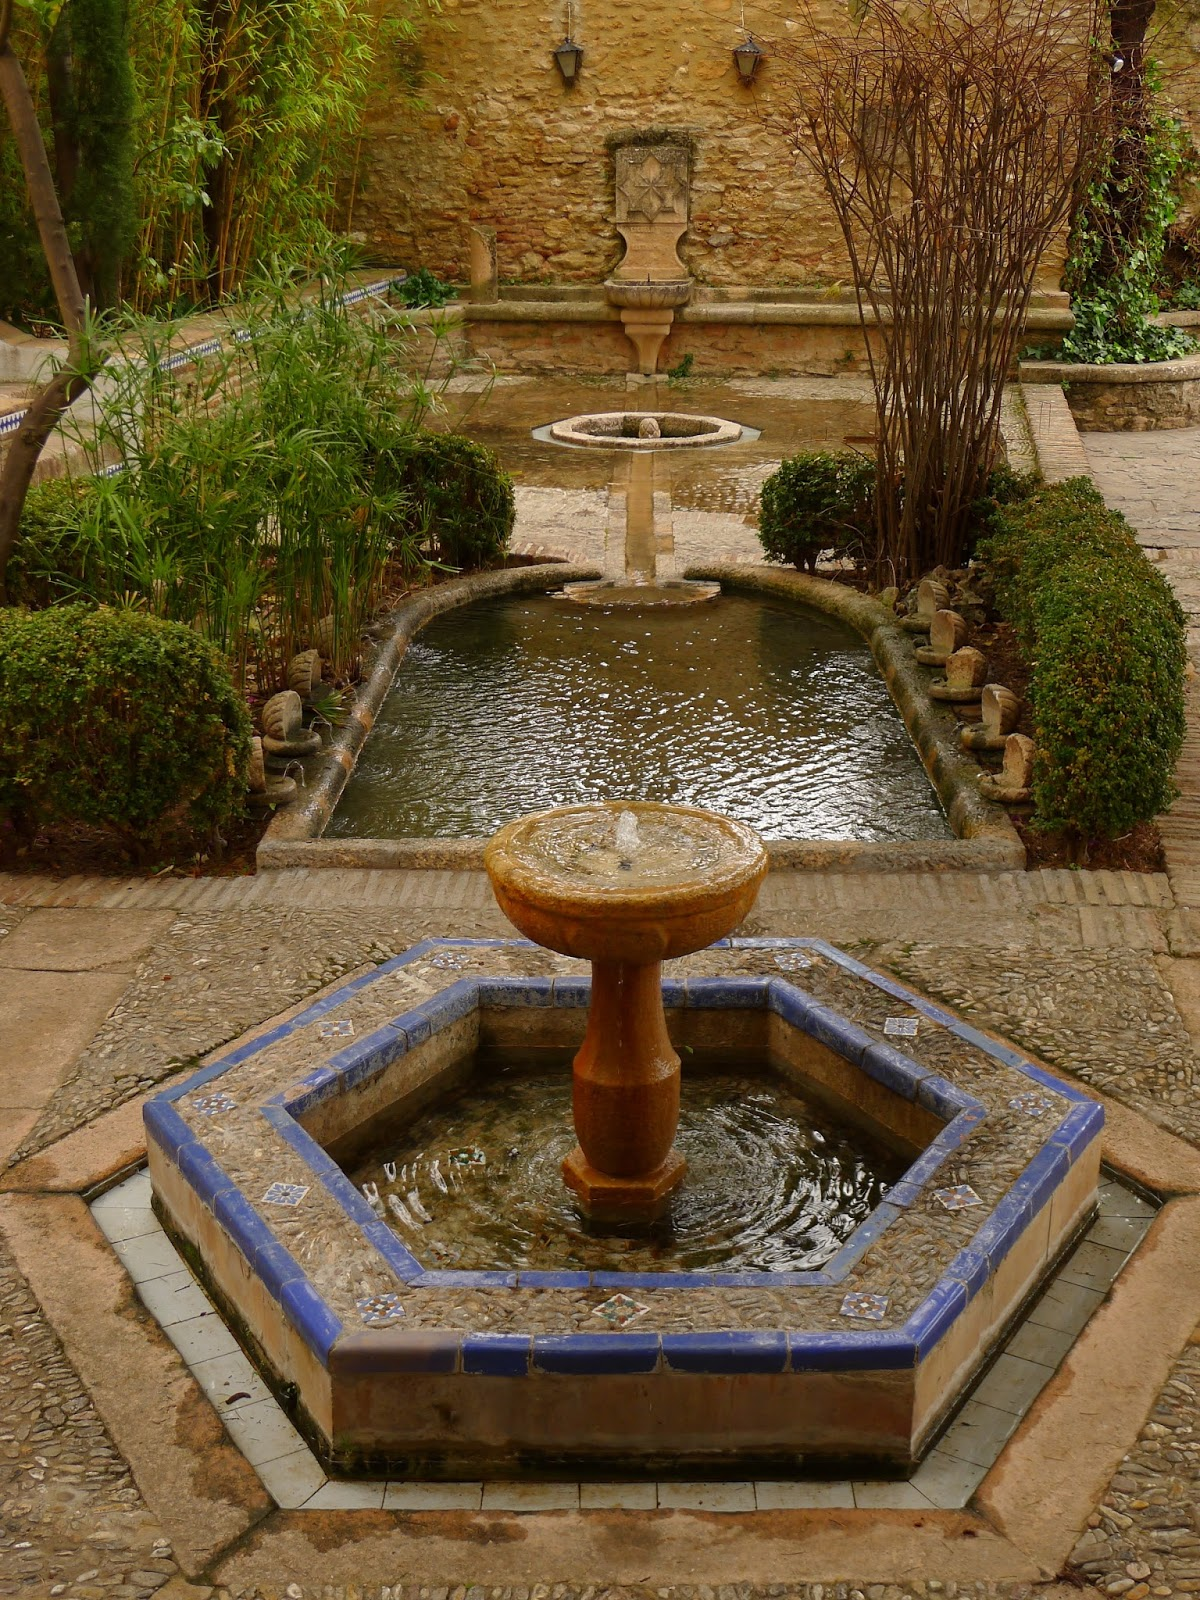 Jeffrey Bale's World Of Gardens: The Fountain Of Life